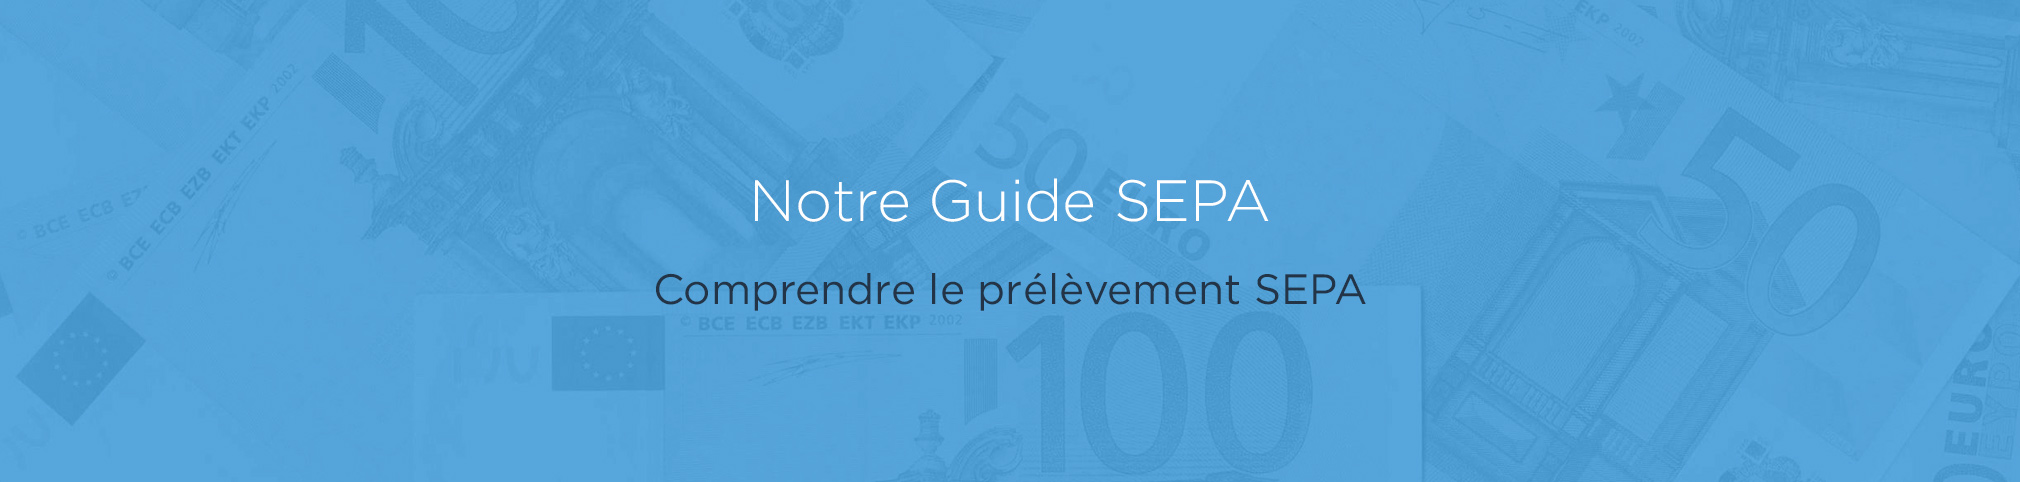 Le Guide SEPA: Une introduction à la zone unique de paiements en Euros